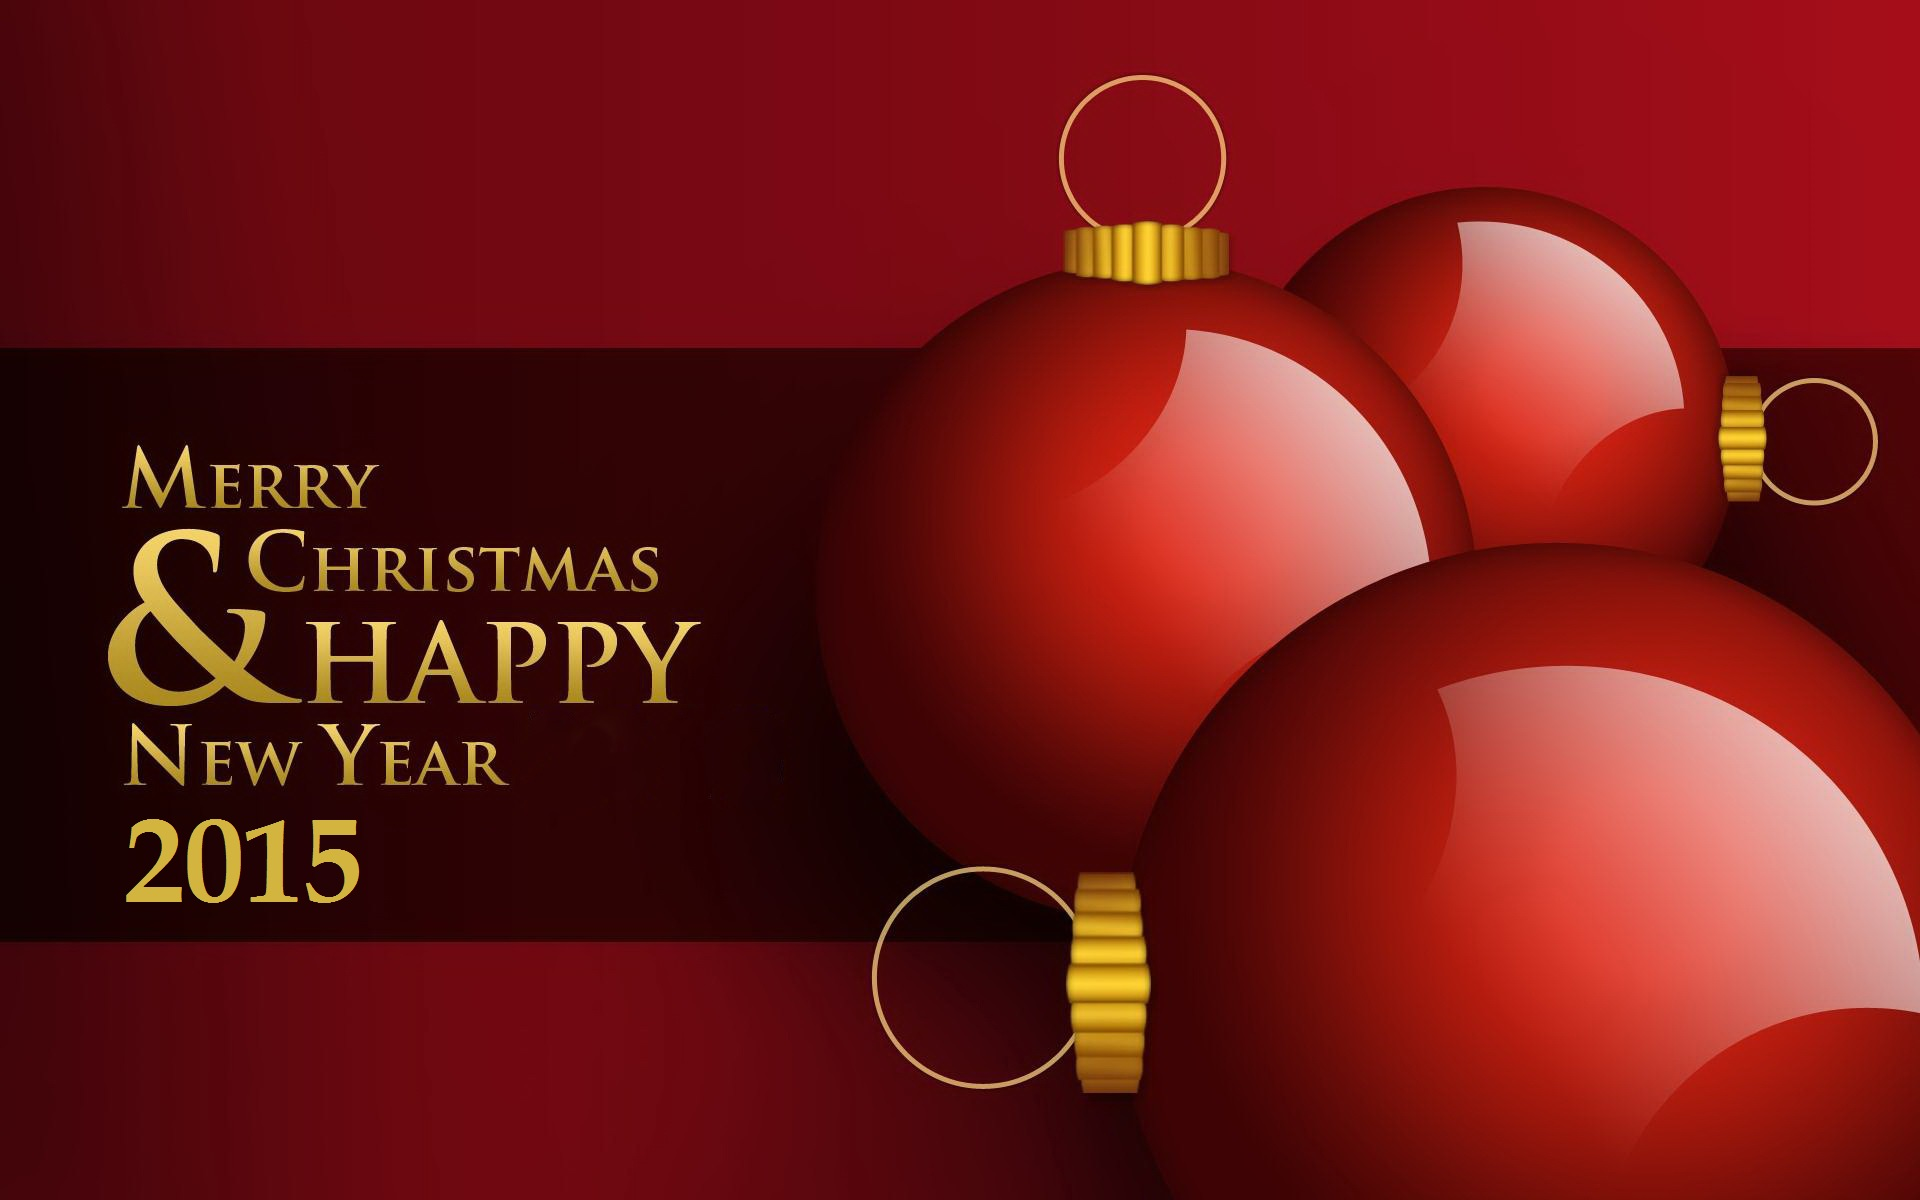 Merry christmas and happy new year 2015 wallpapers merry christmas and happy new year 2015 wallpaper09 m4hsunfo